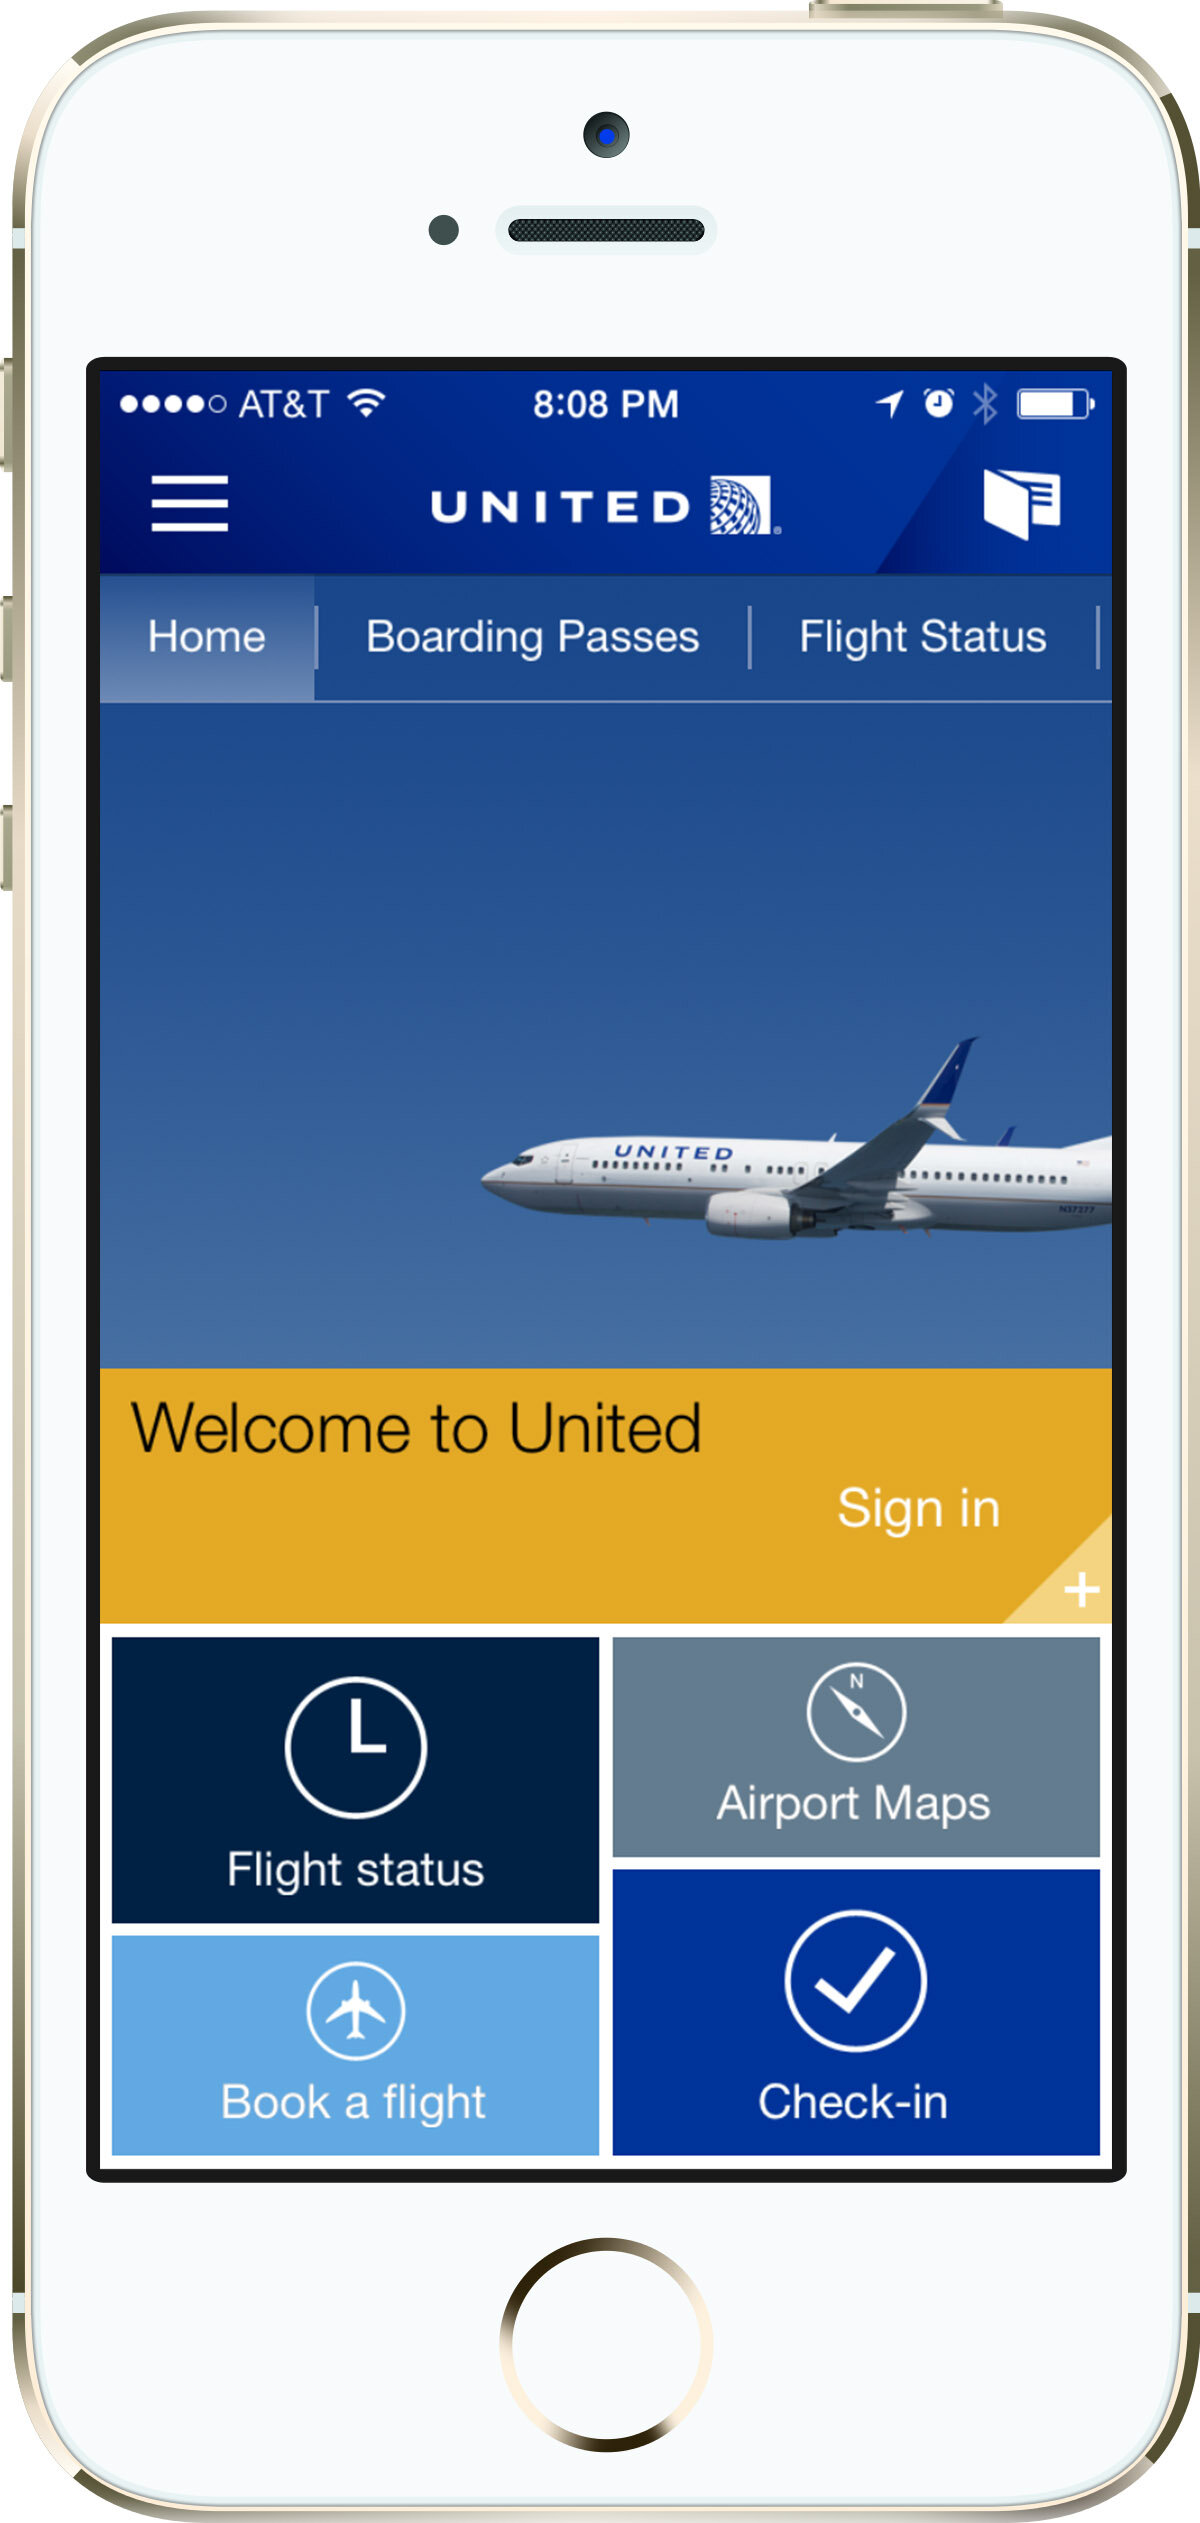 Apple iPhone 5s / United Airlines mobile app